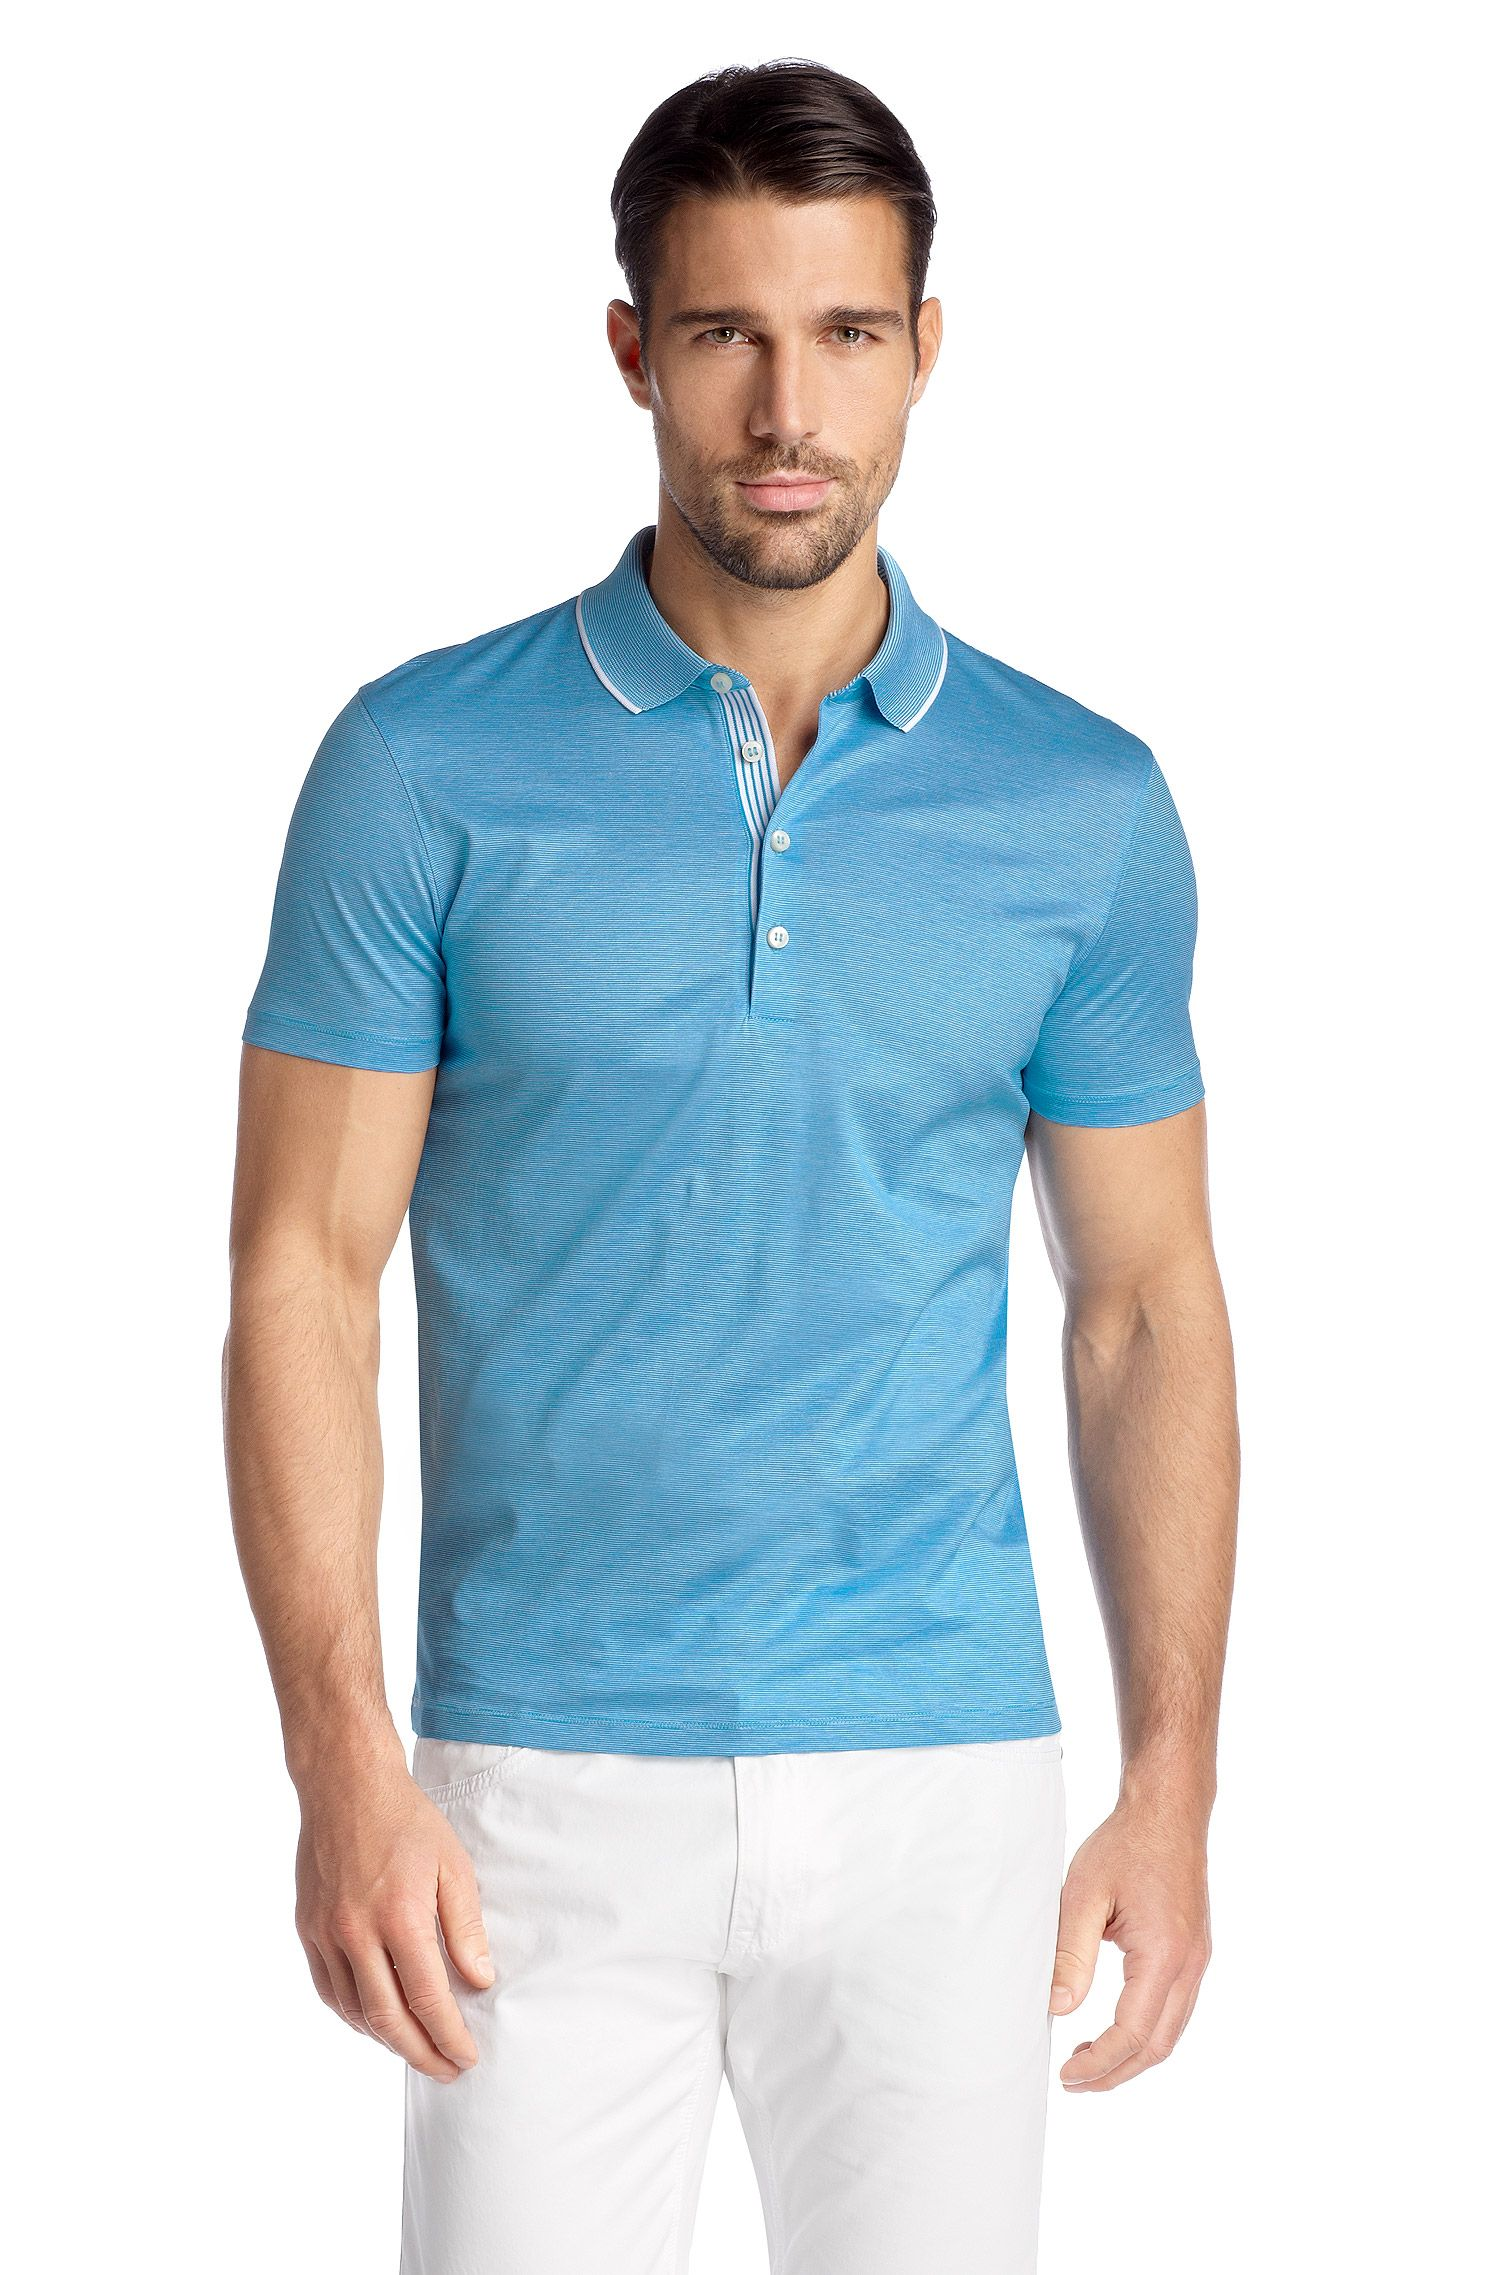 Regular Fit cotton polo shirt 'Bugnara 20'